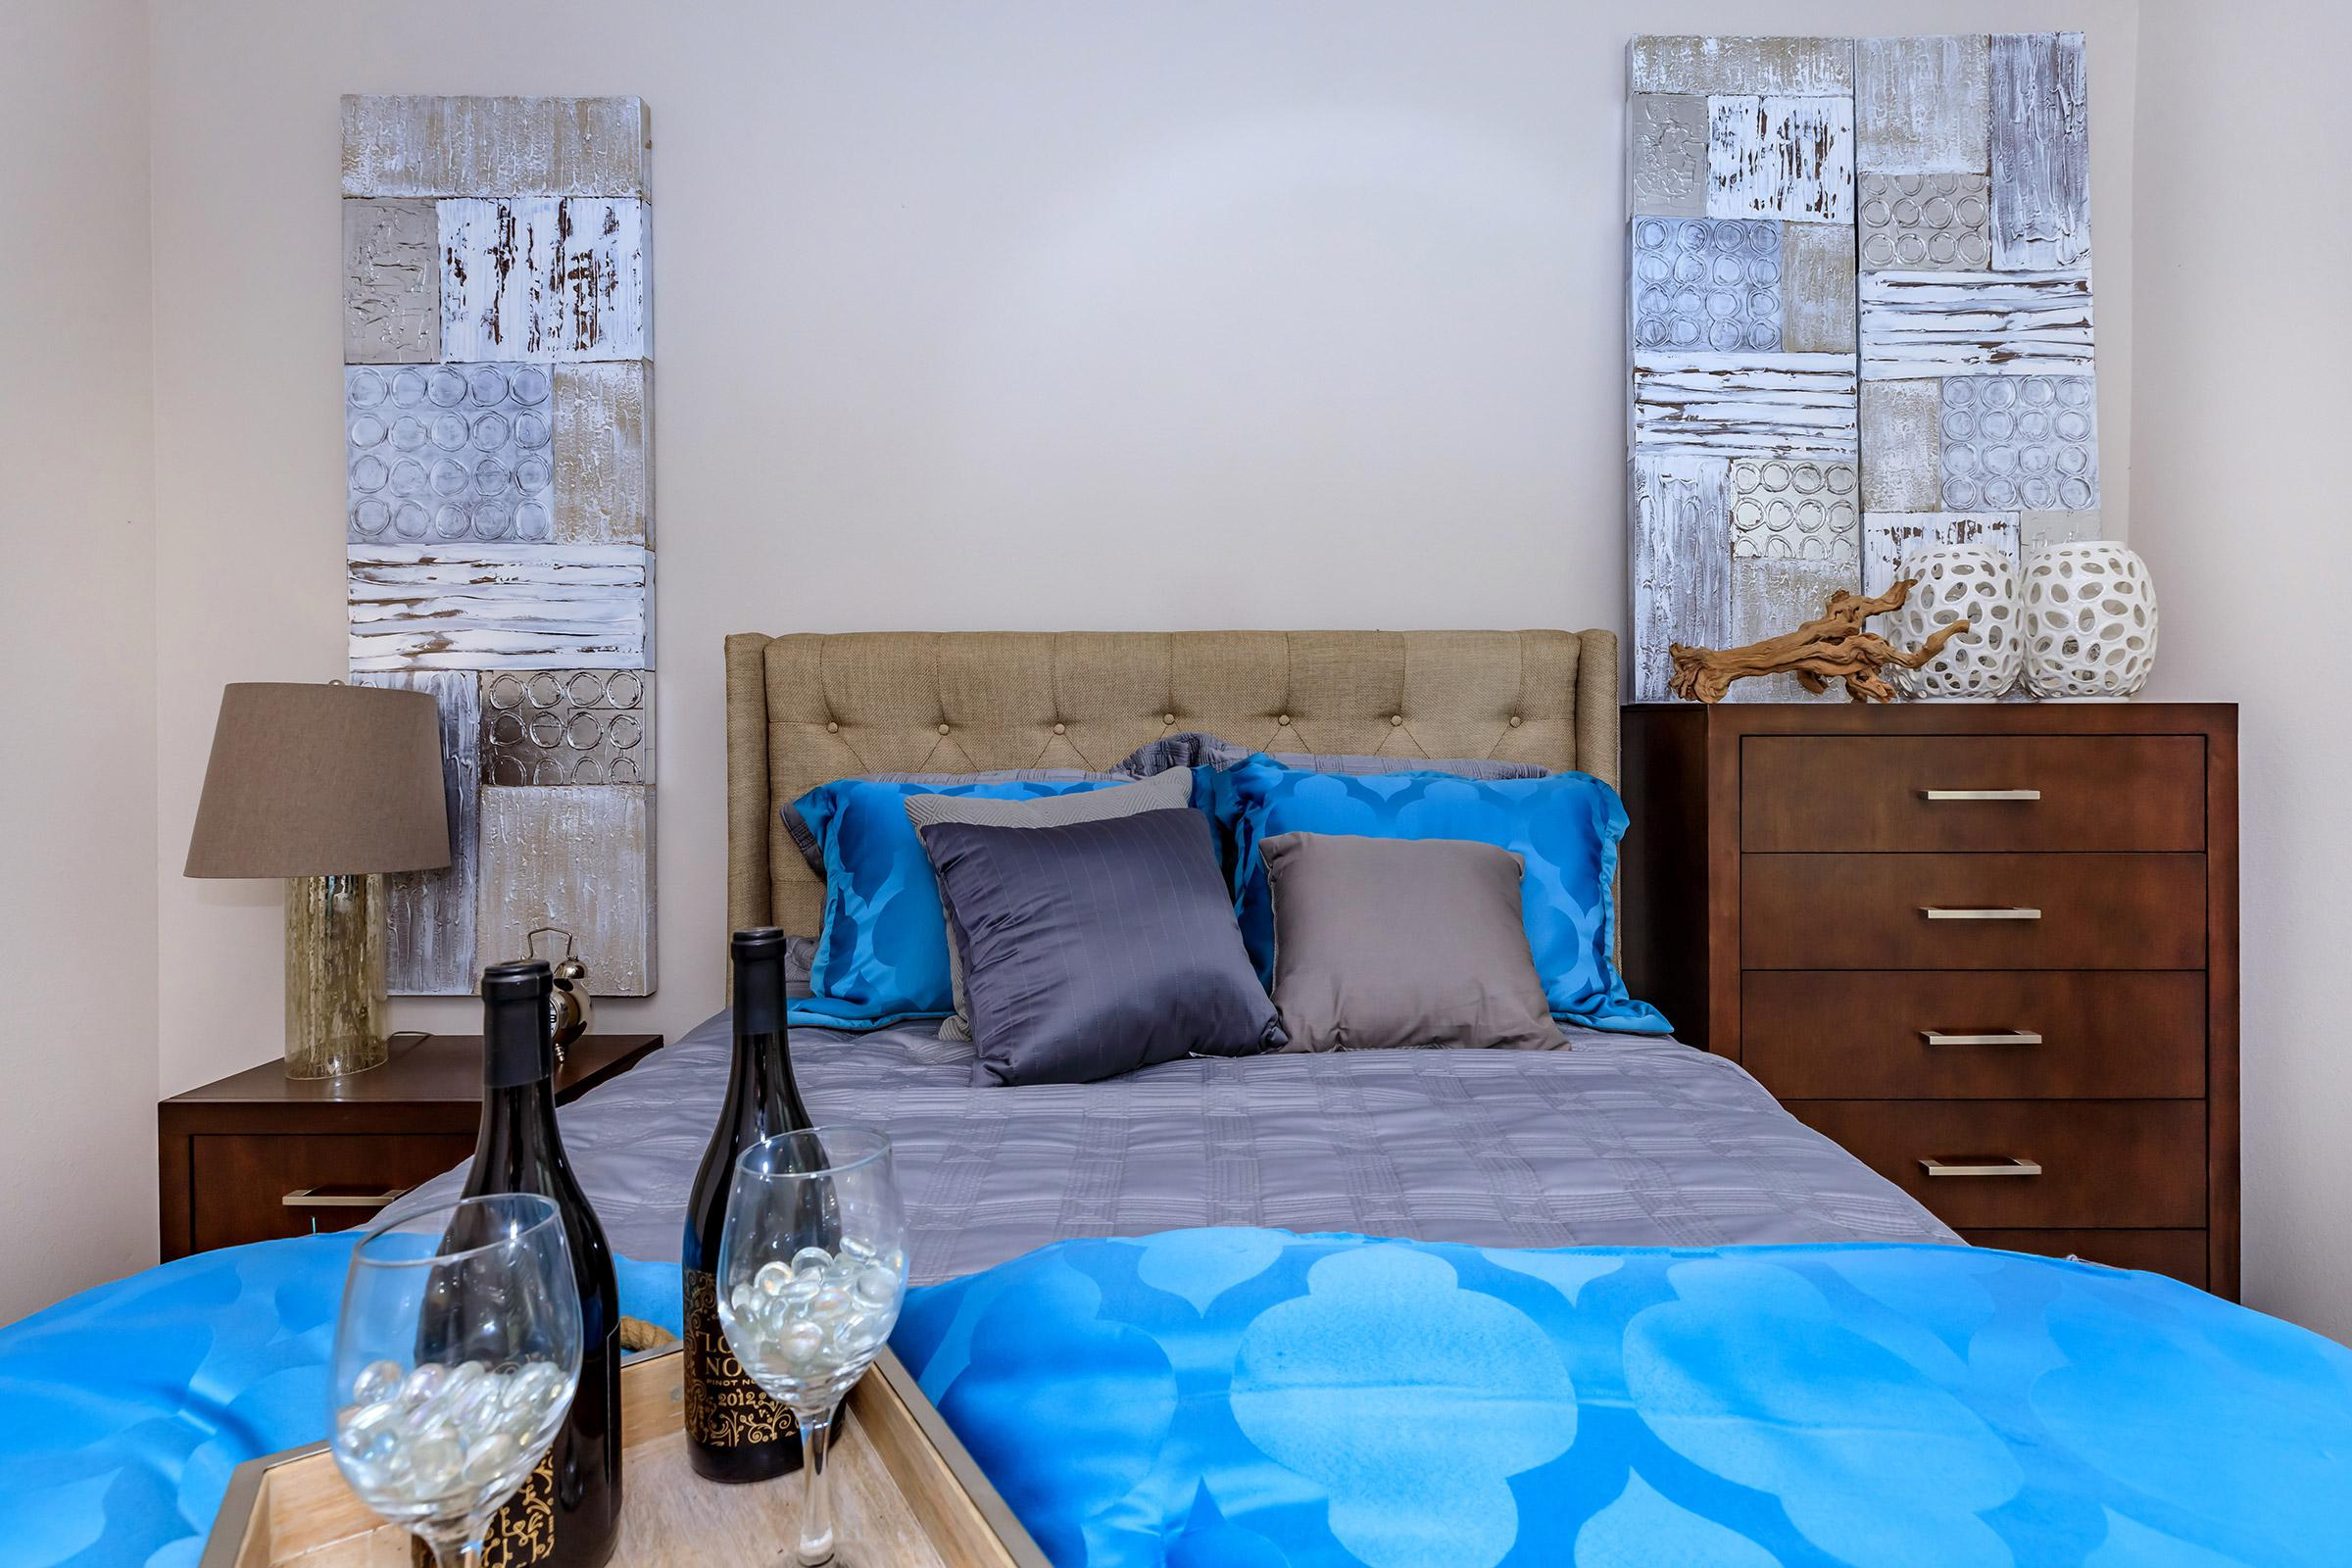 a glass with a blue bed